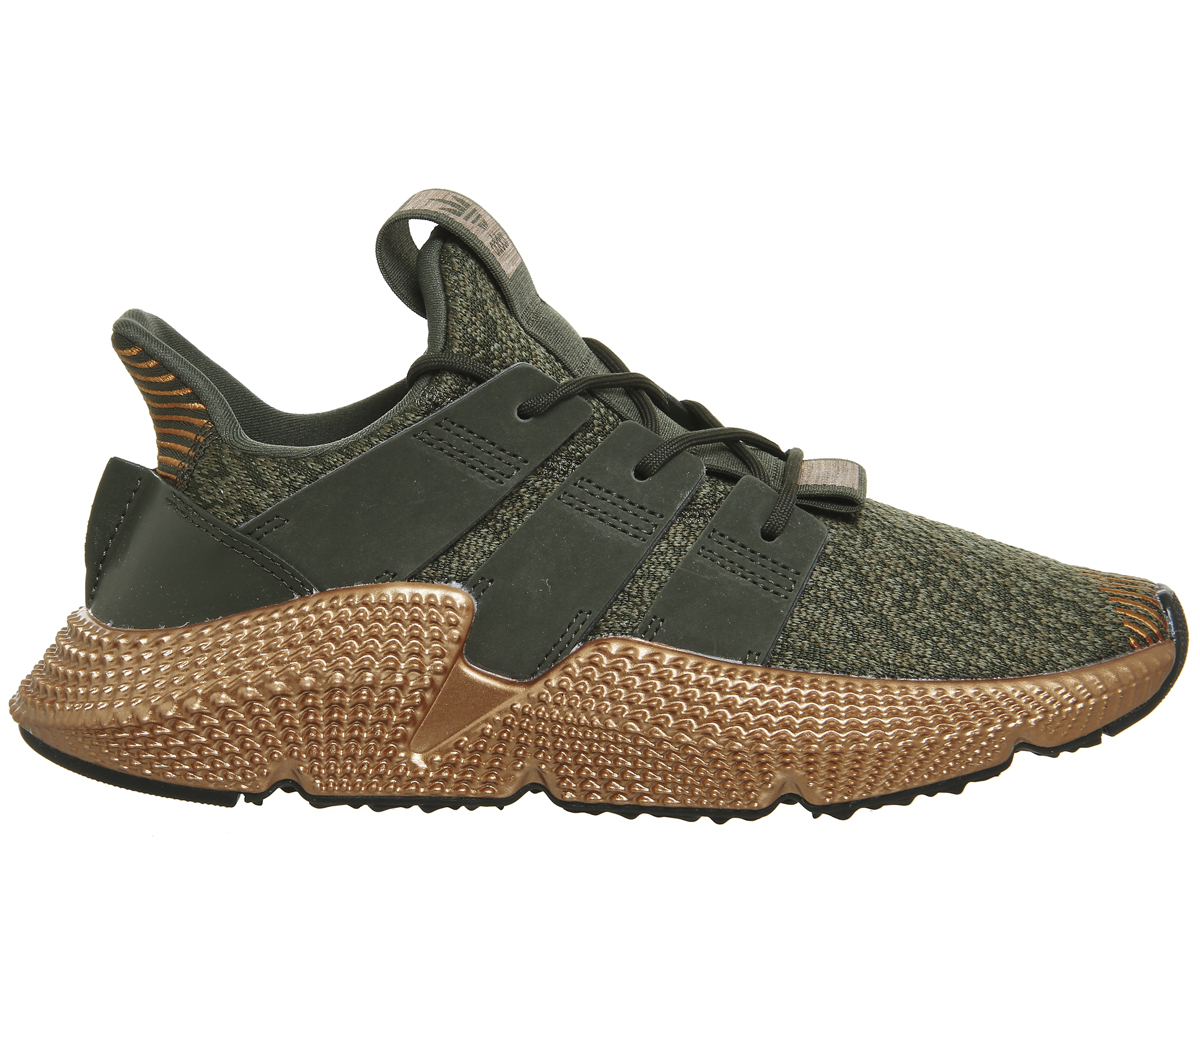 Zapatos promocionales para hombres y mujeres Womens Adidas Prophere Trainers NIGHT CARGO Trainers Shoes